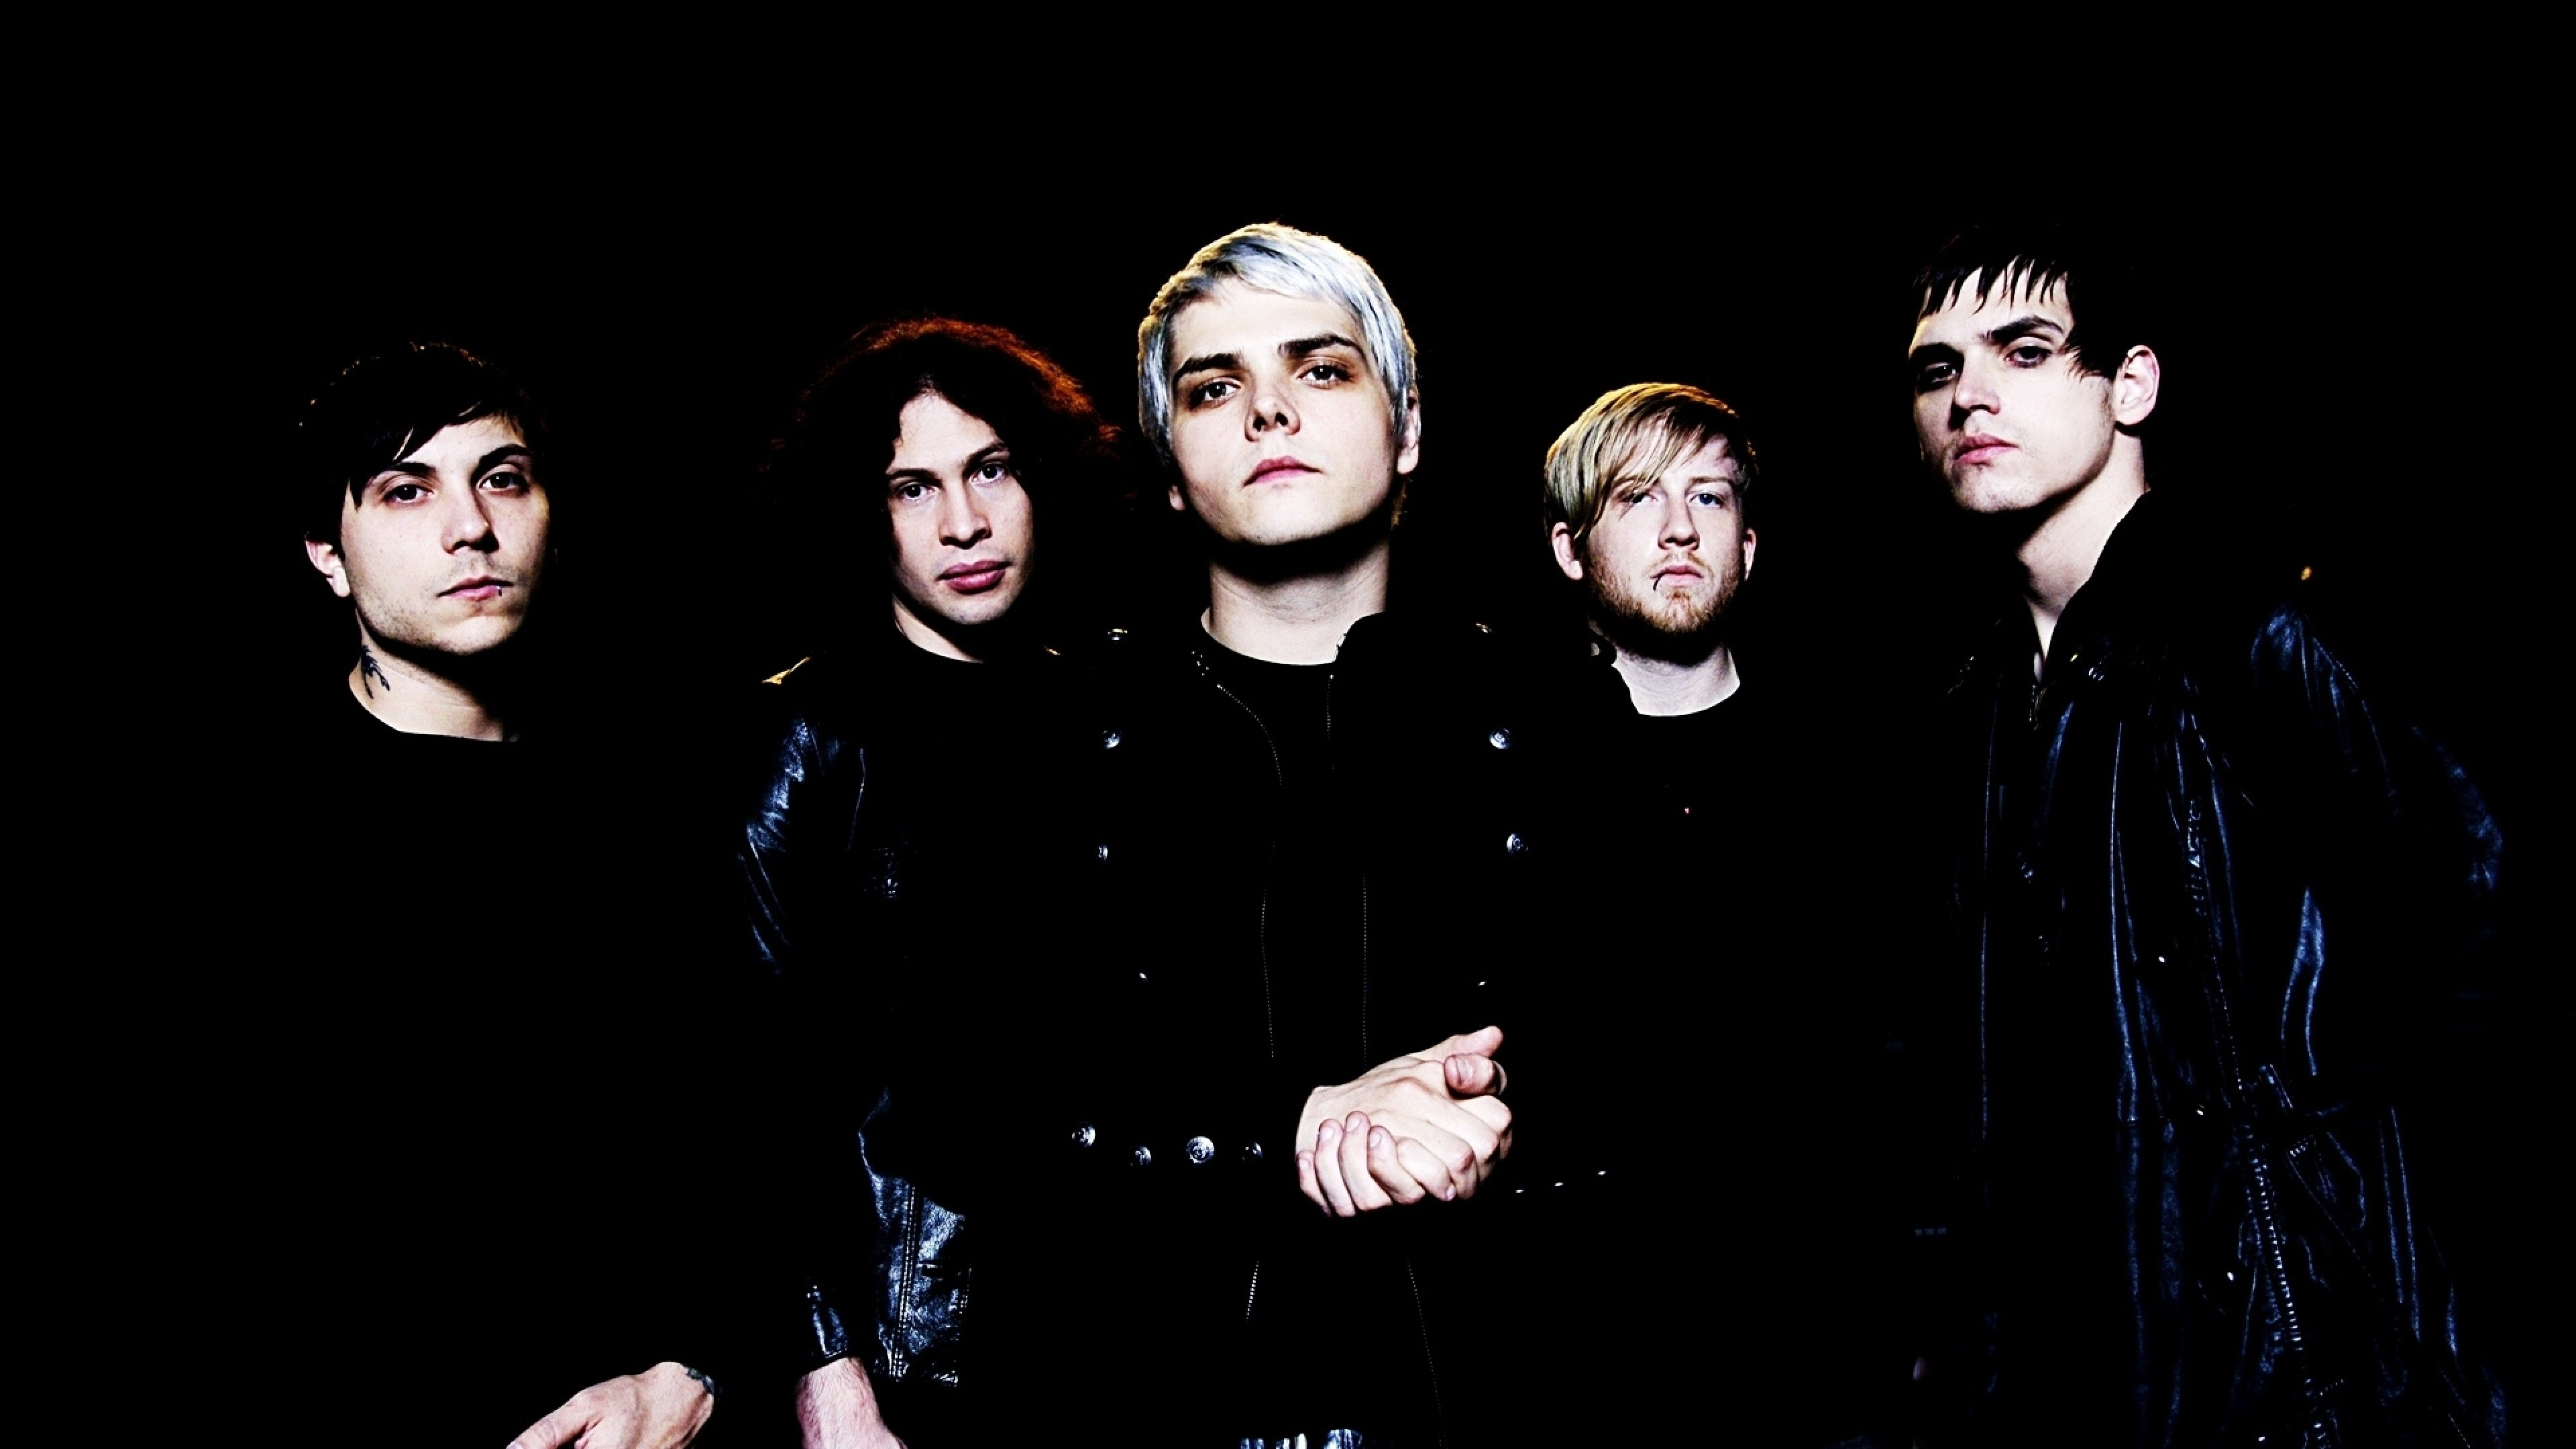 3840x2160  Wallpaper my chemical romance, band, members, look, background